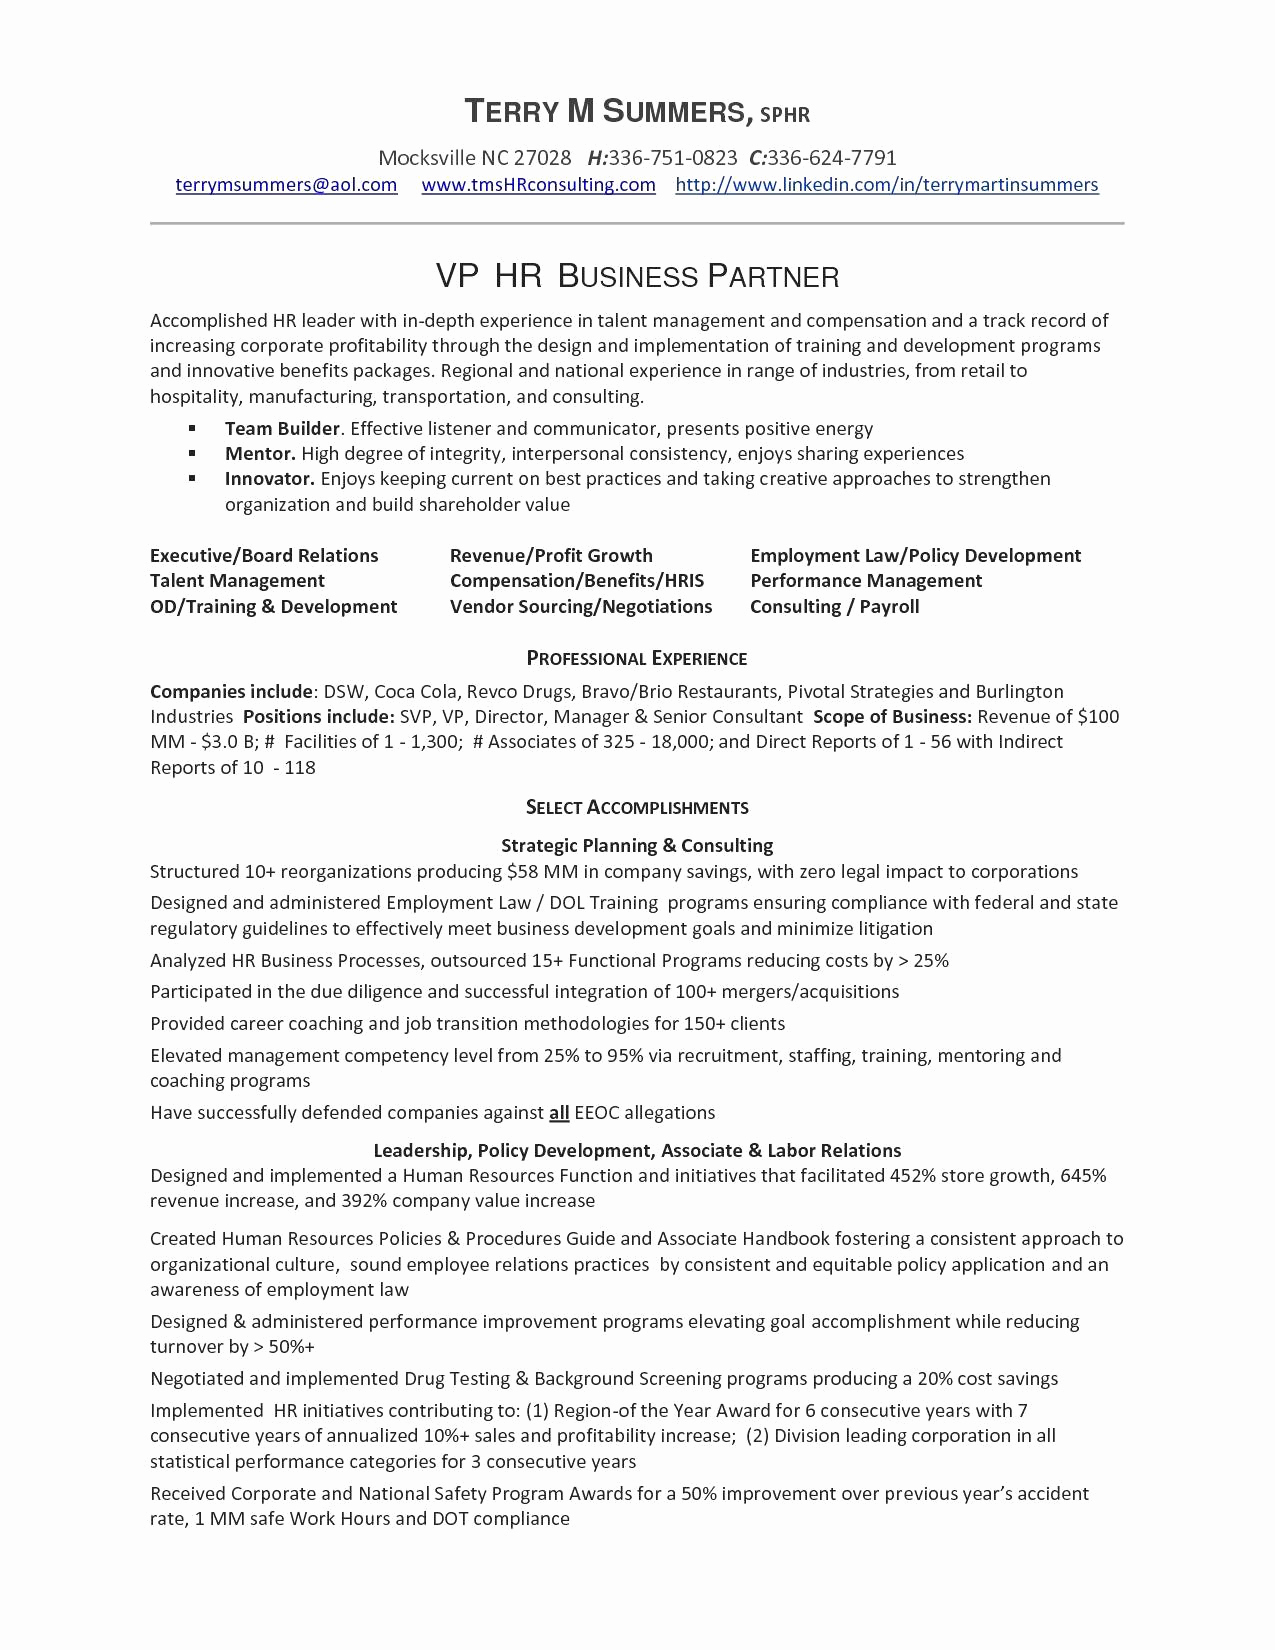 Resume for Police Officer with No Experience - Police Ficer Resume Template 15 Unique Police Ficer Cover Letter